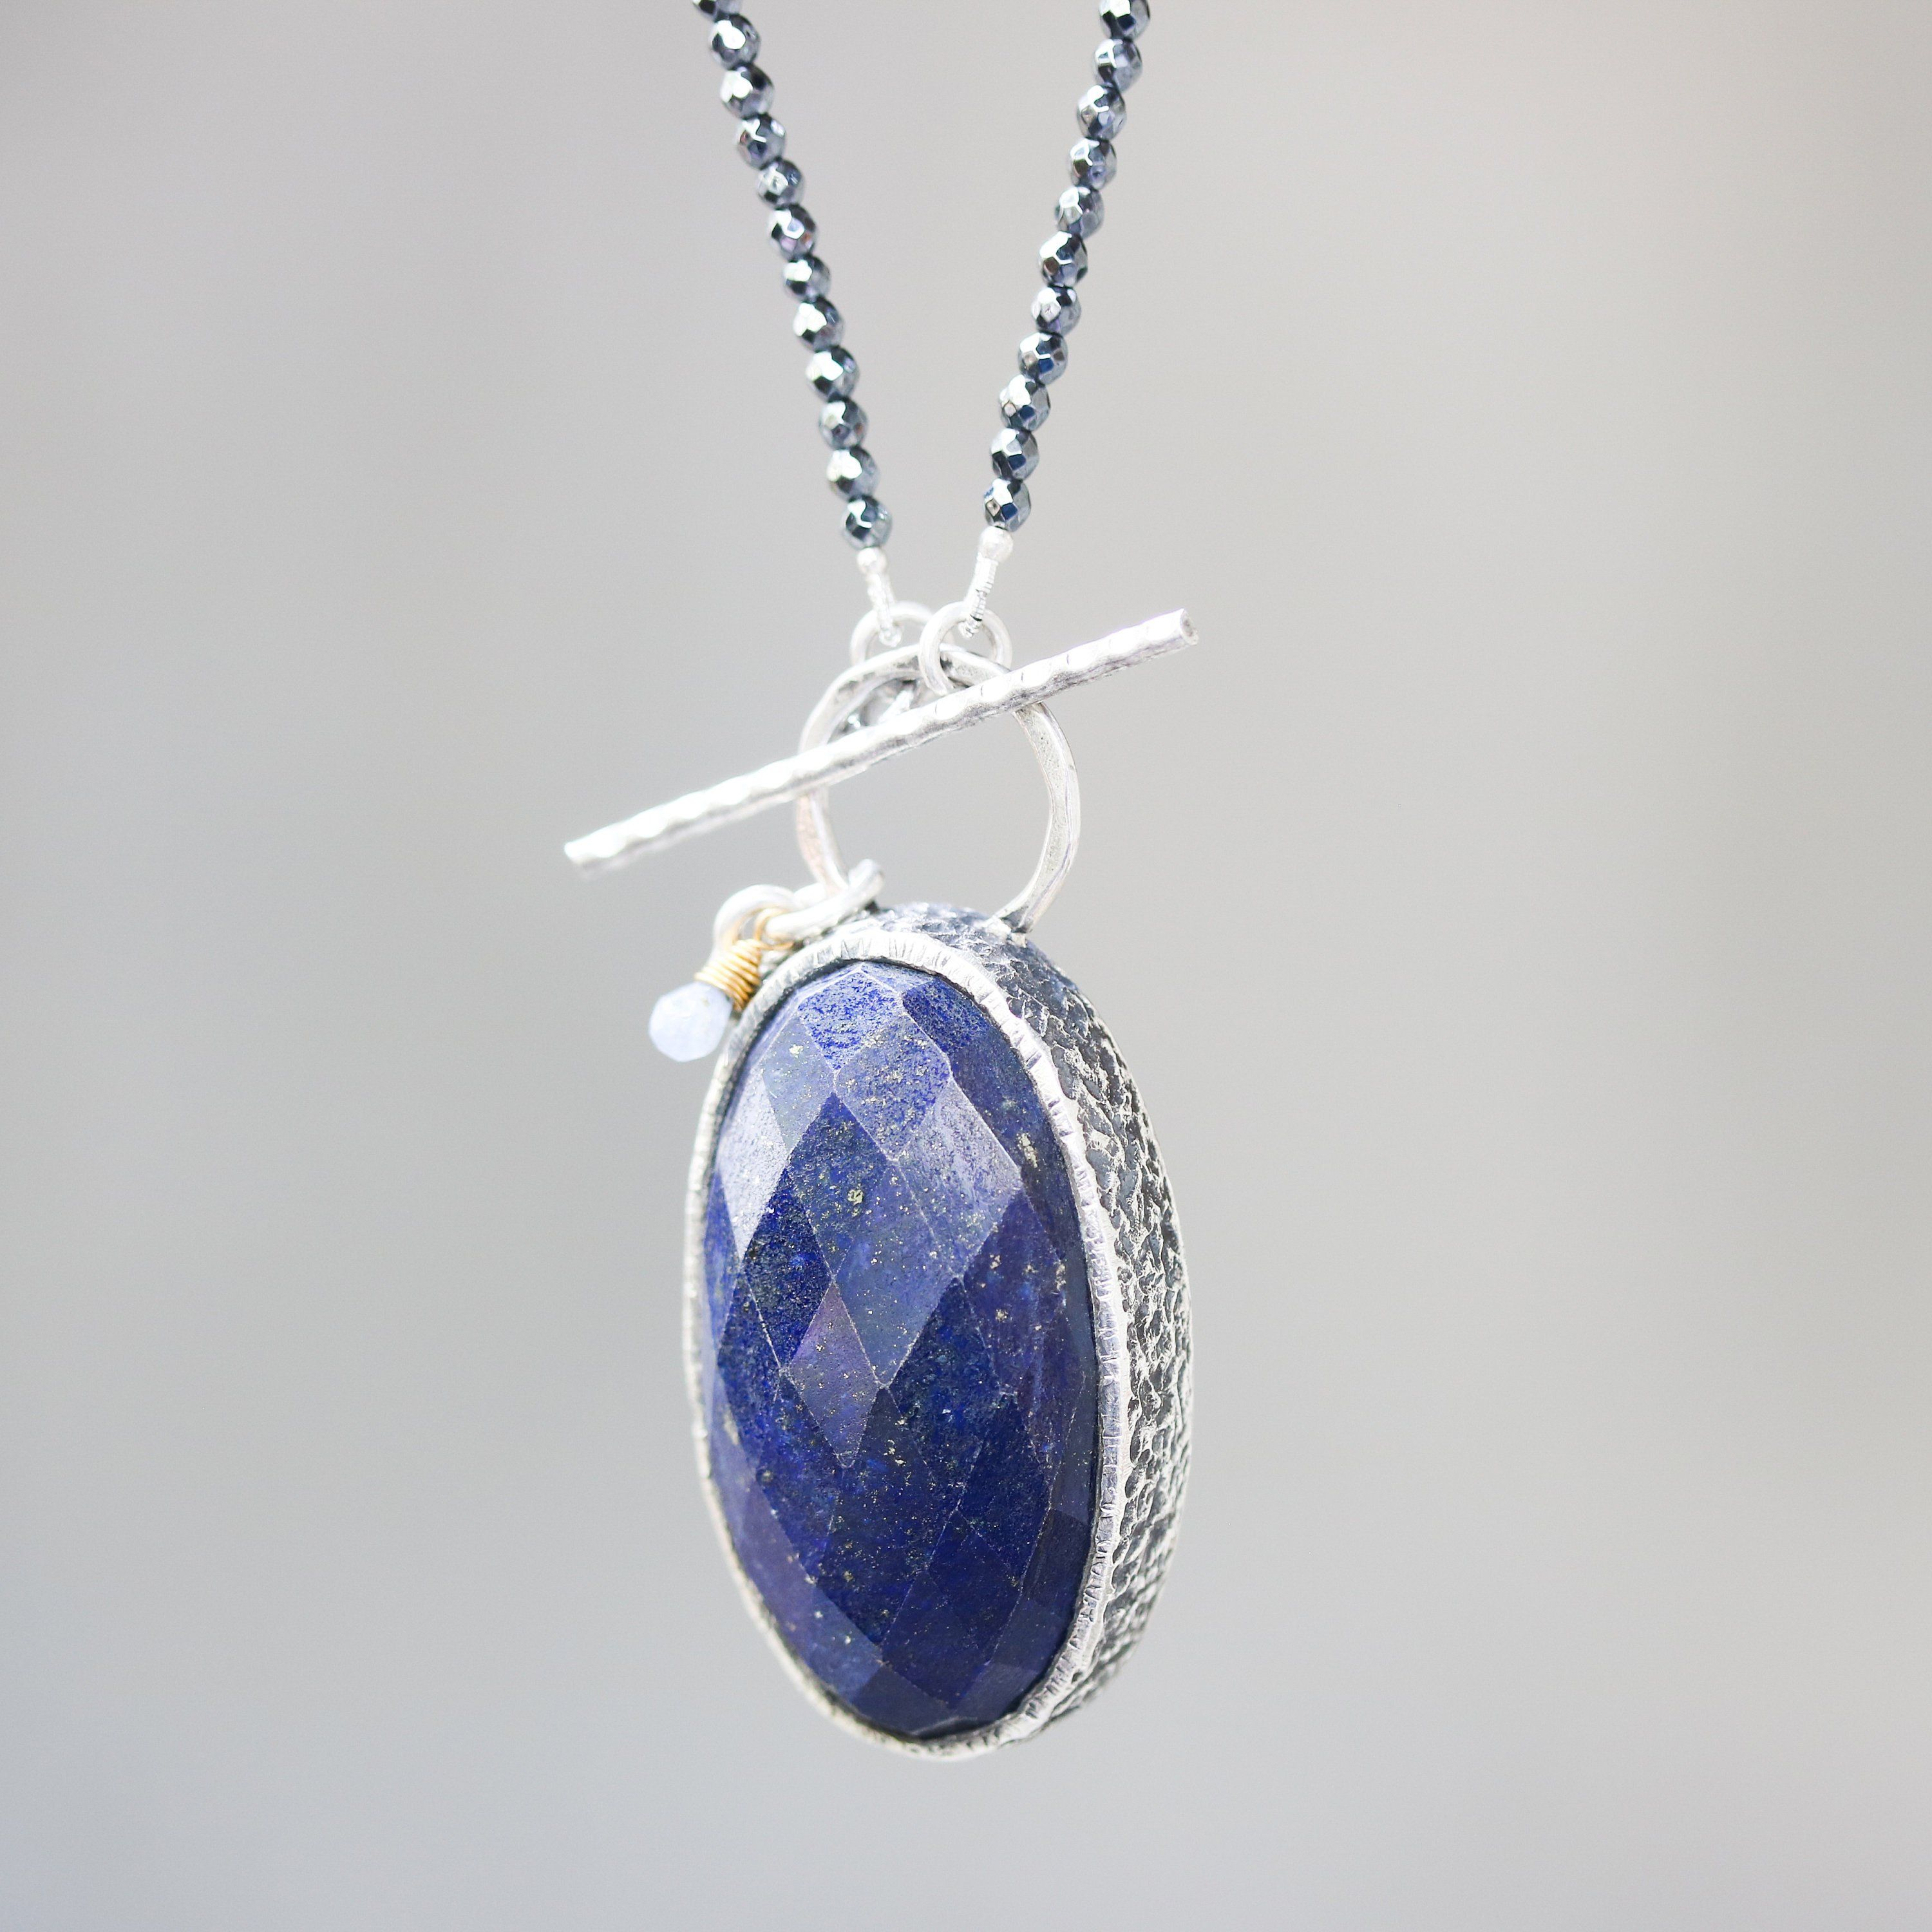 Tiny faceted hematite necklace with oval faceted lapis lazuli